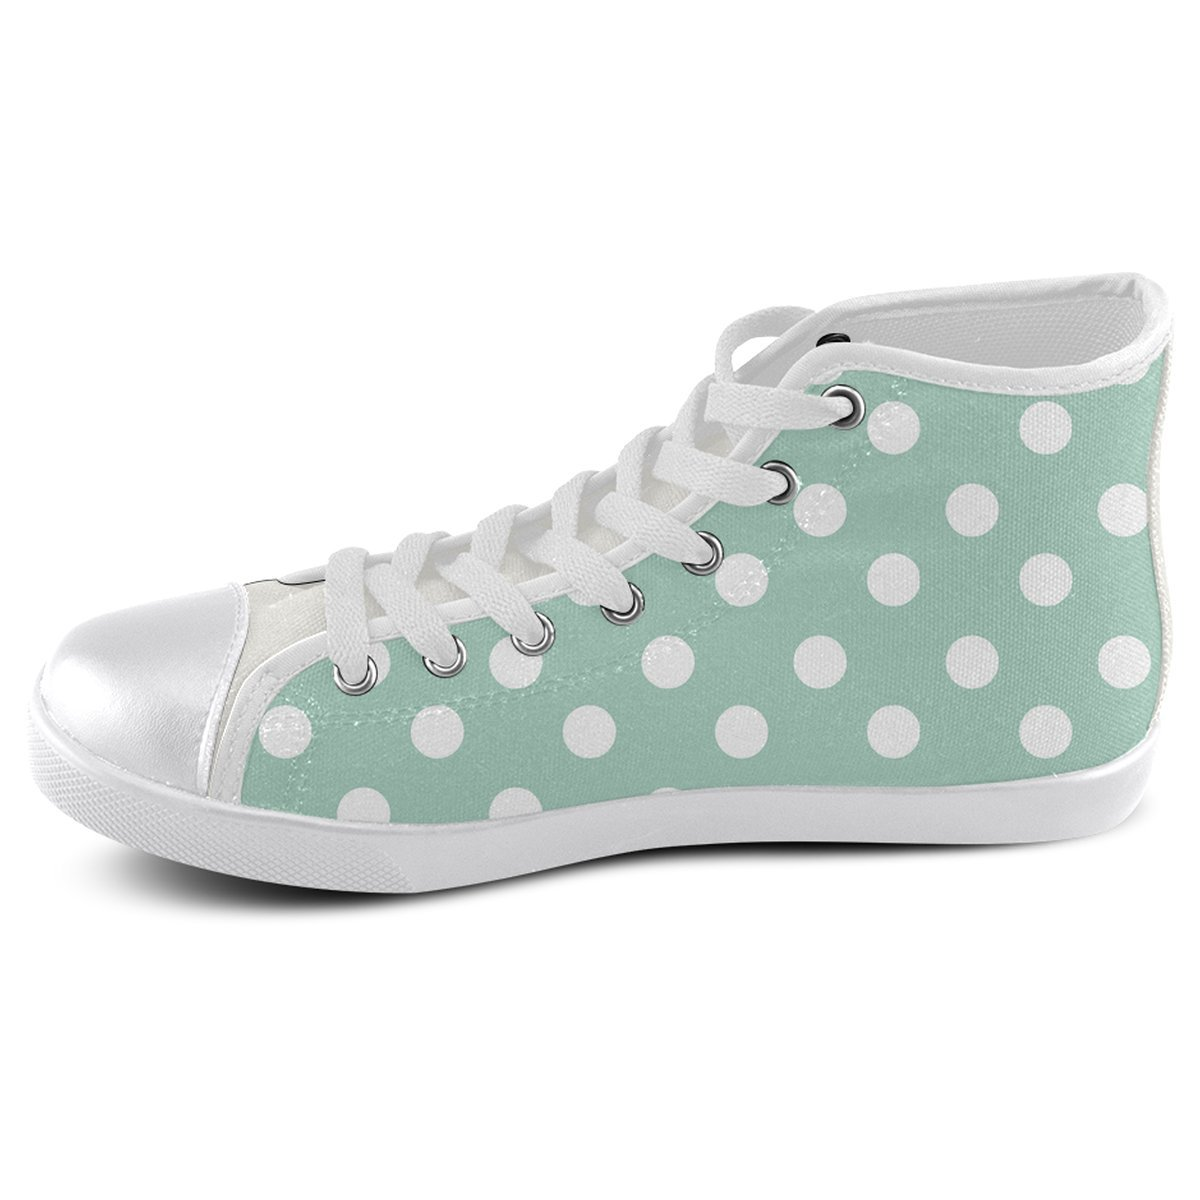 Model002 Artsadd Custom Aqua Polka Dots High Top Canvas Shoes for Men